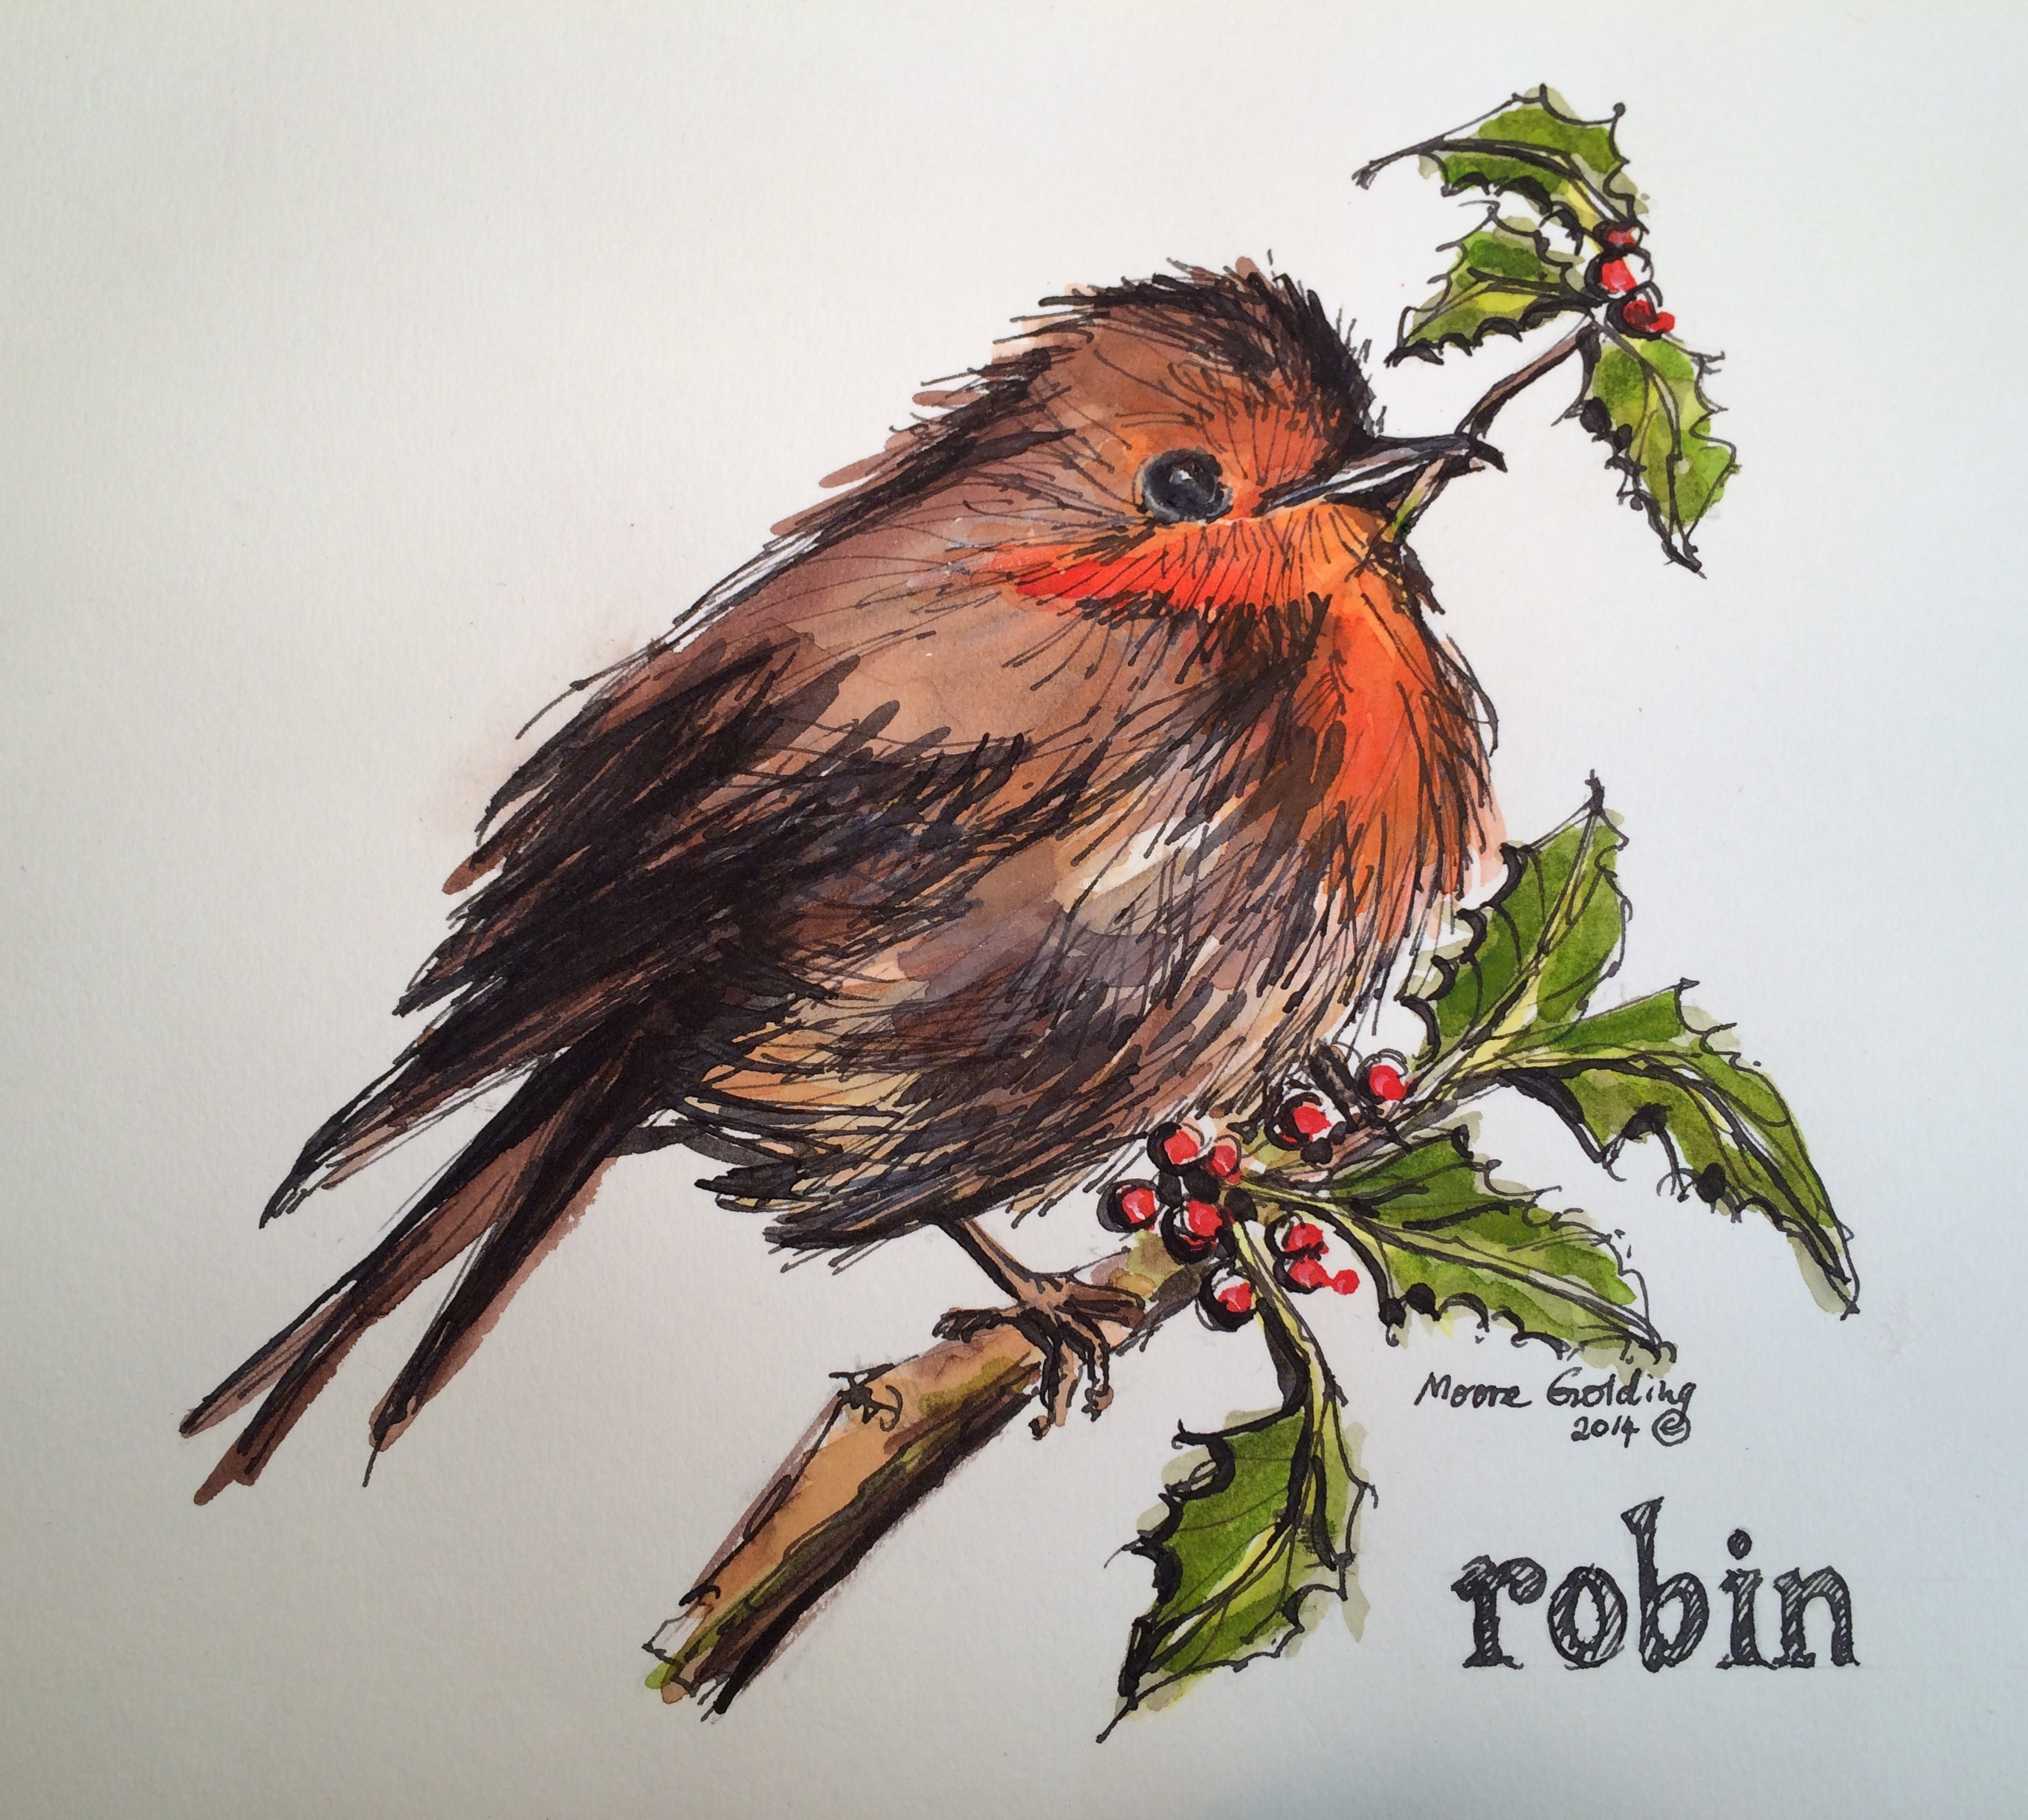 christmas robin elizabeth moore golding 2014 - Is Red Robin Open On Christmas